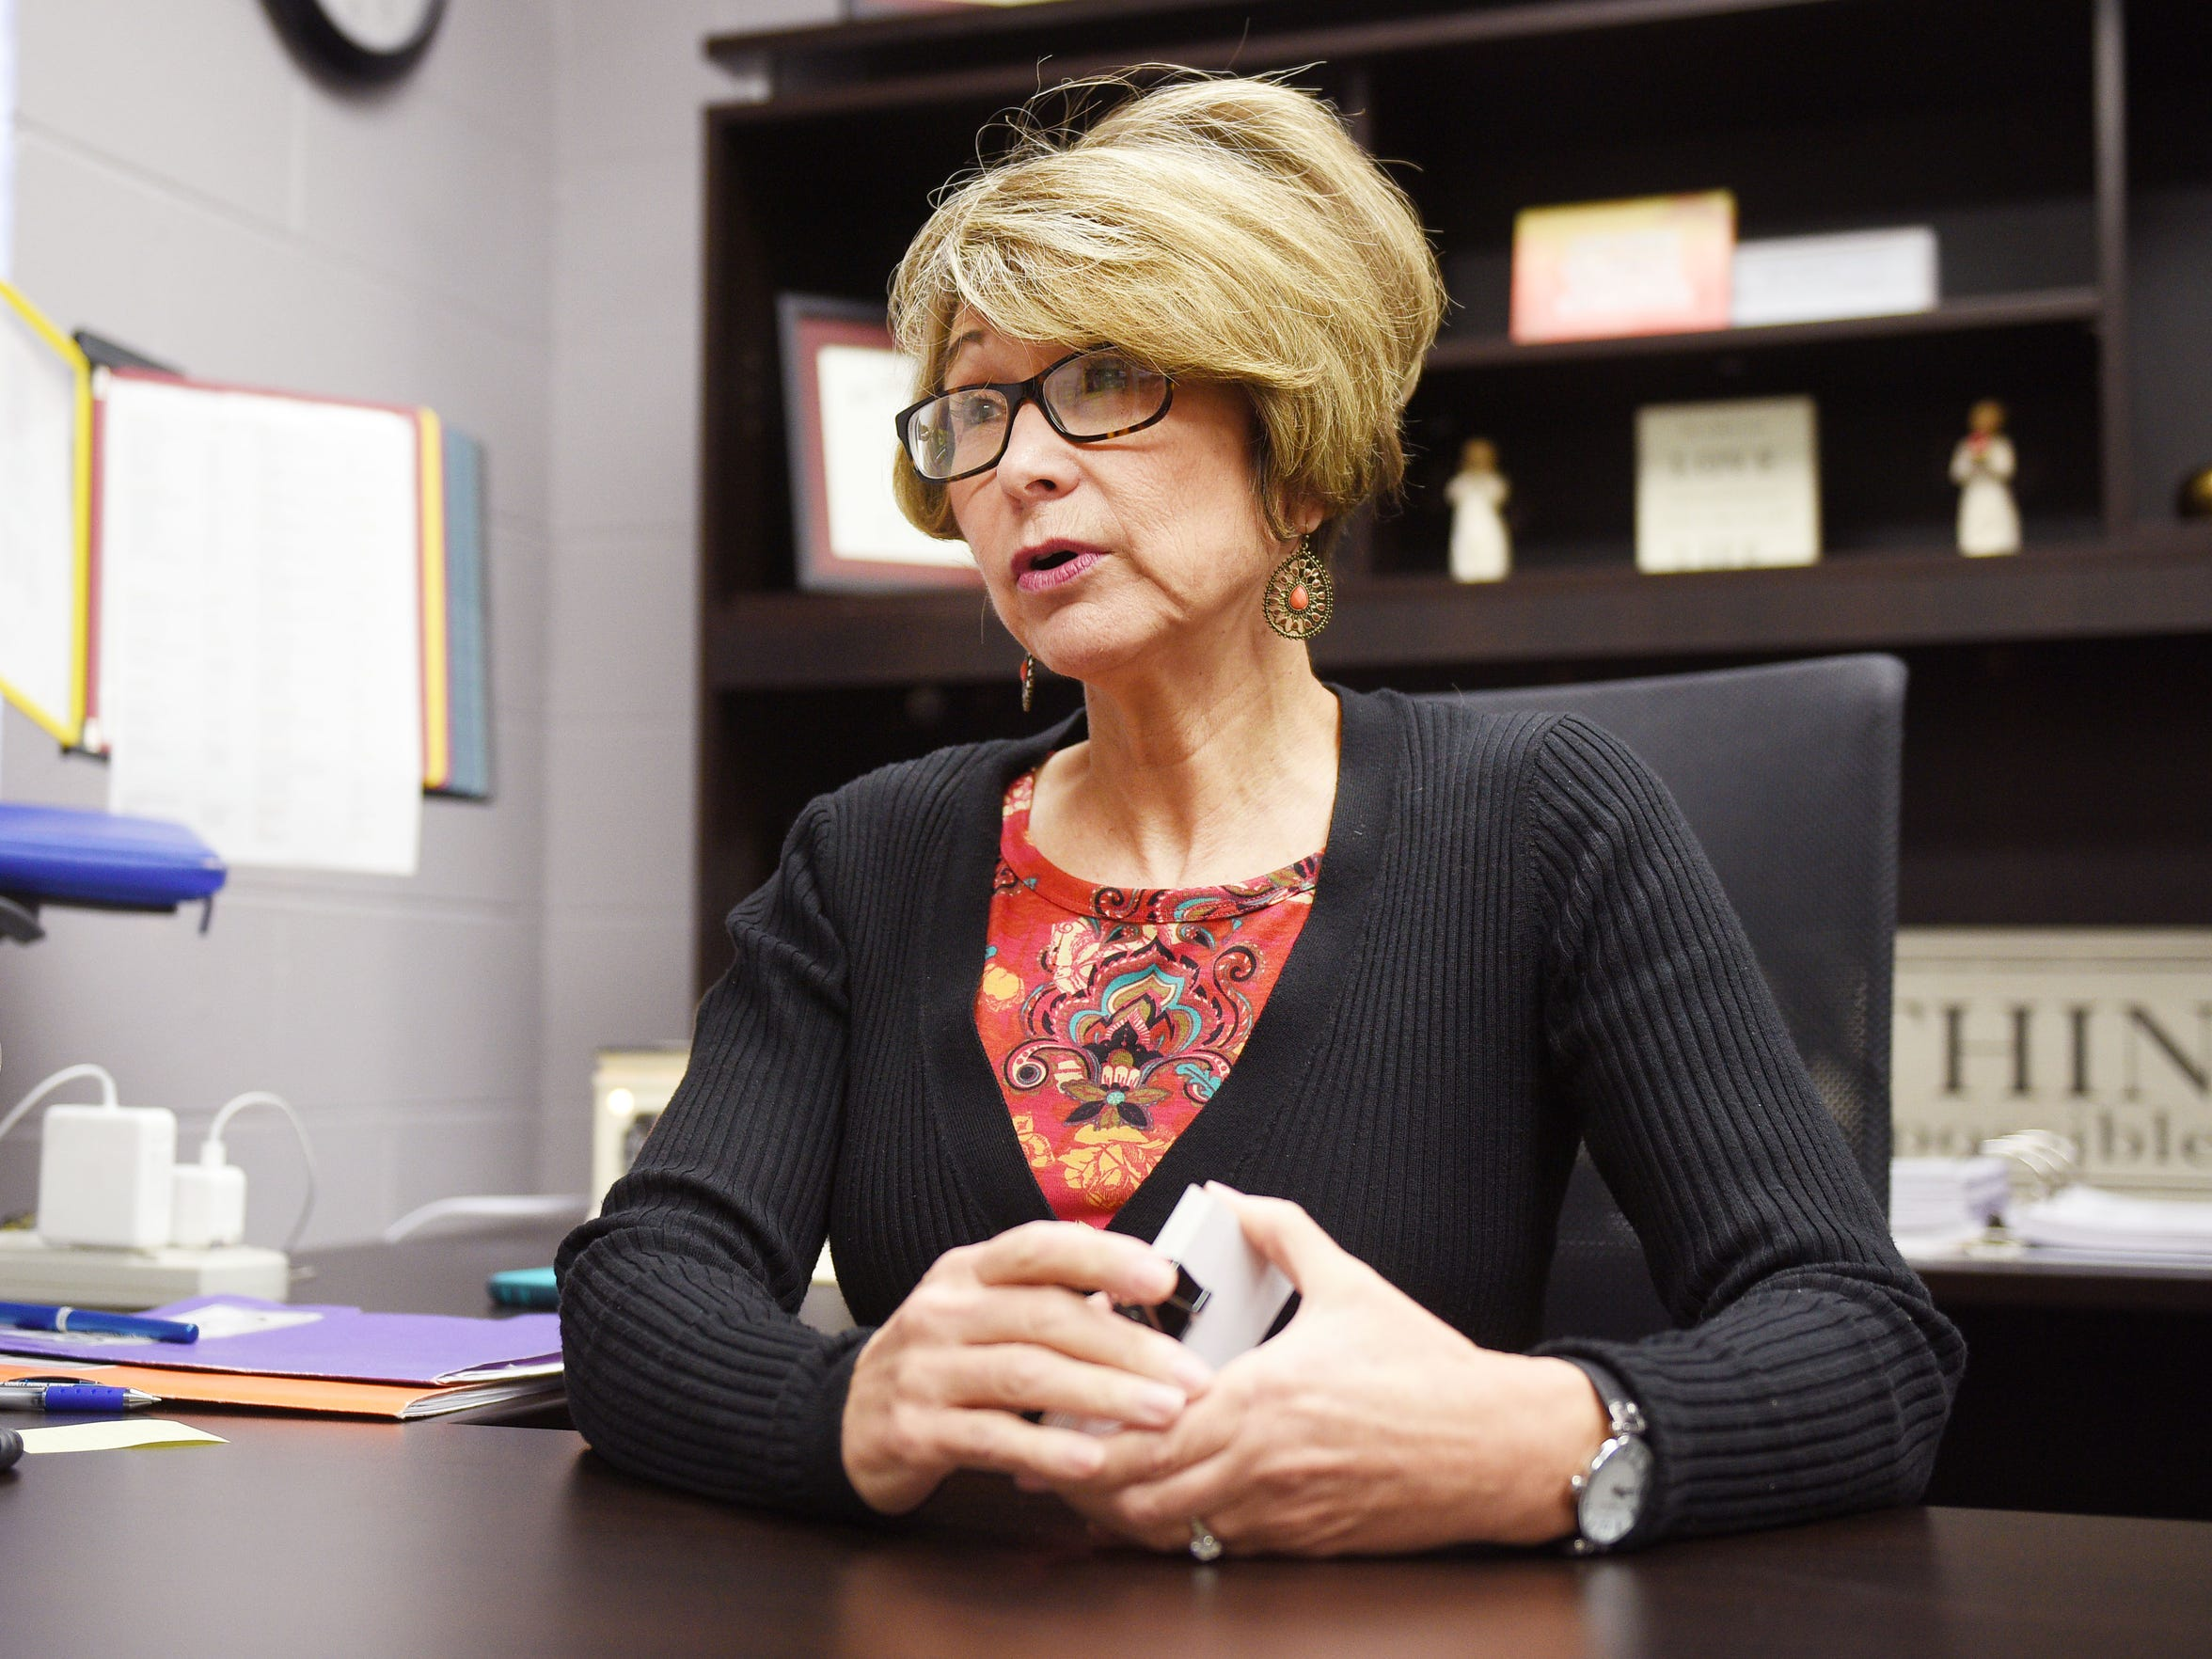 Todd County schools superintendent Karen Whitney talks about the future of the school and her future at Todd County Schools Wednesday, Nov. 15, in Todd County, South Dakota.